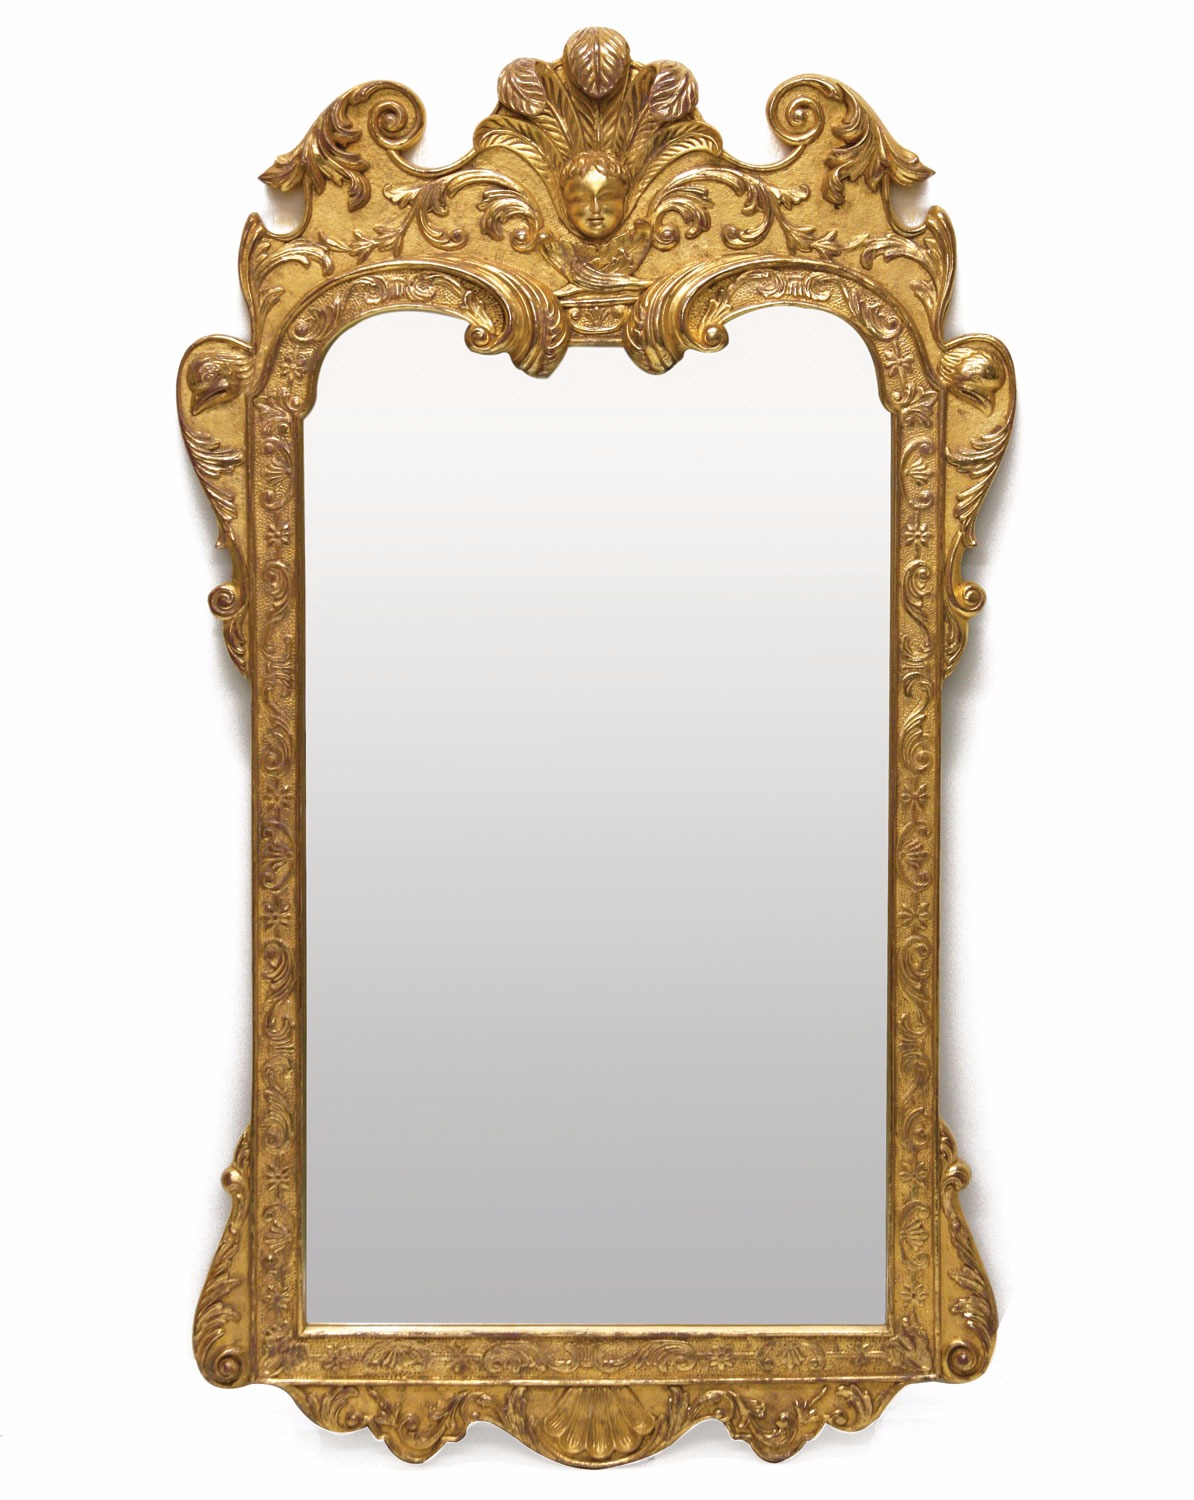 Queen Anne style water gilded mirror